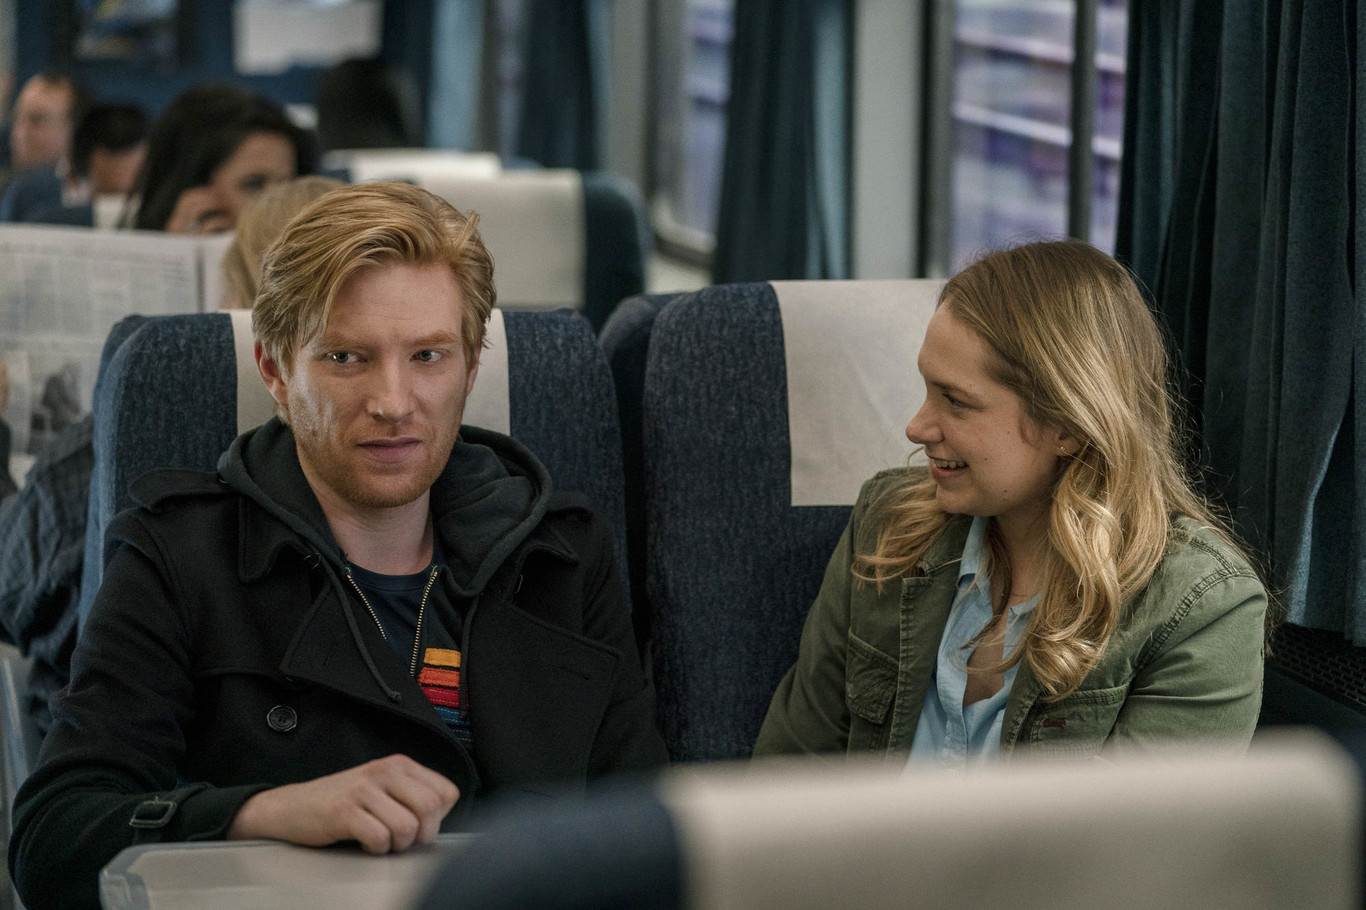 Merritt Wever and Domhnall Gleeson in Run (2020)